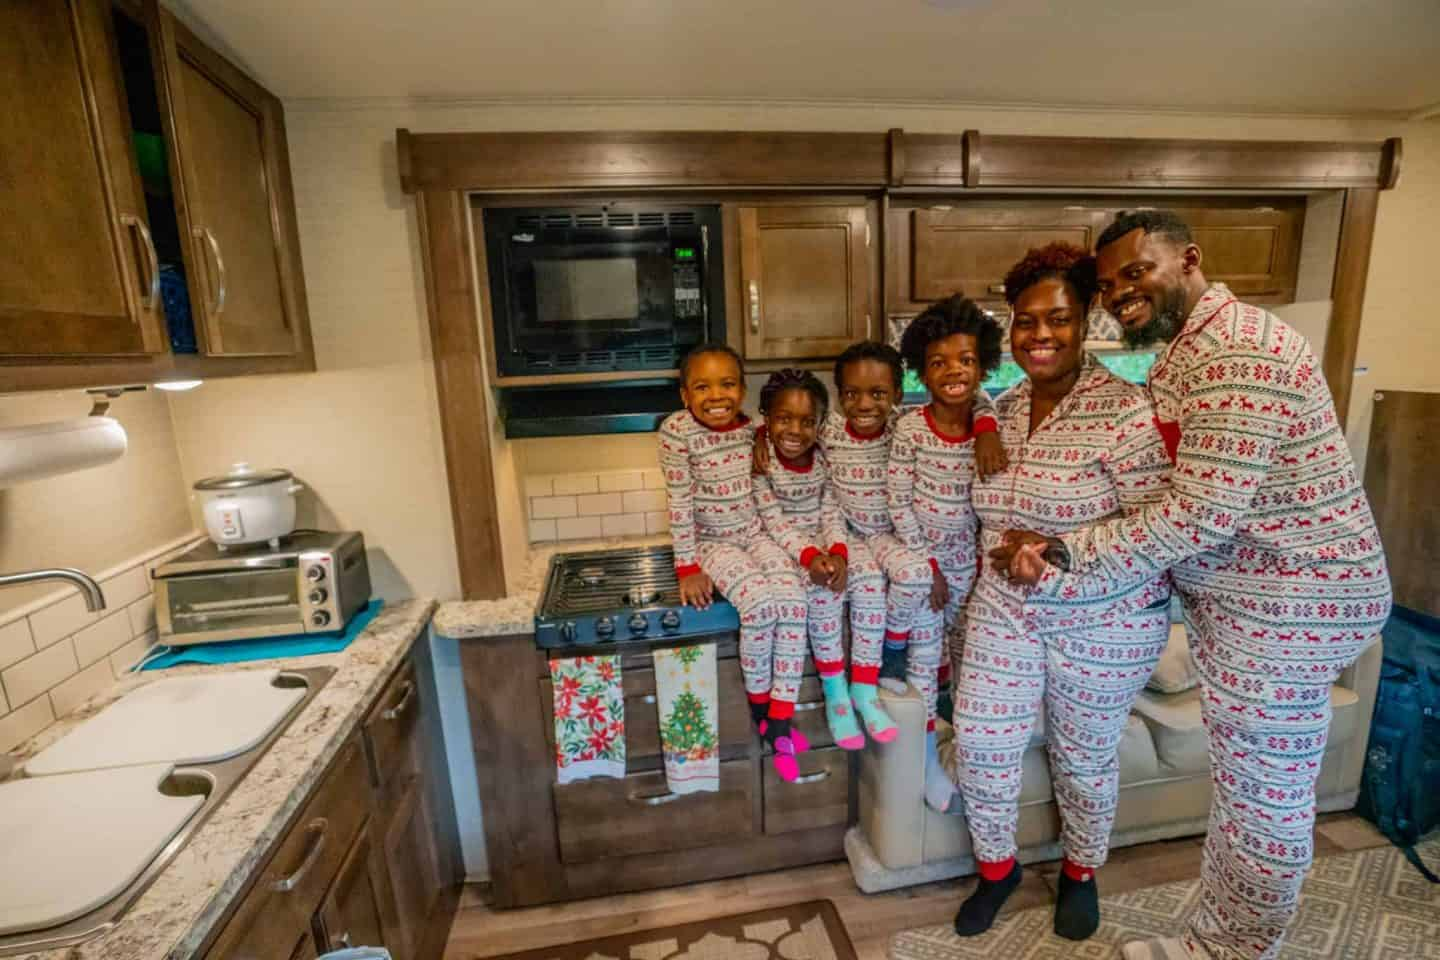 9 Reasons Why Every Parent Should Take An RV Trip With Their Kids